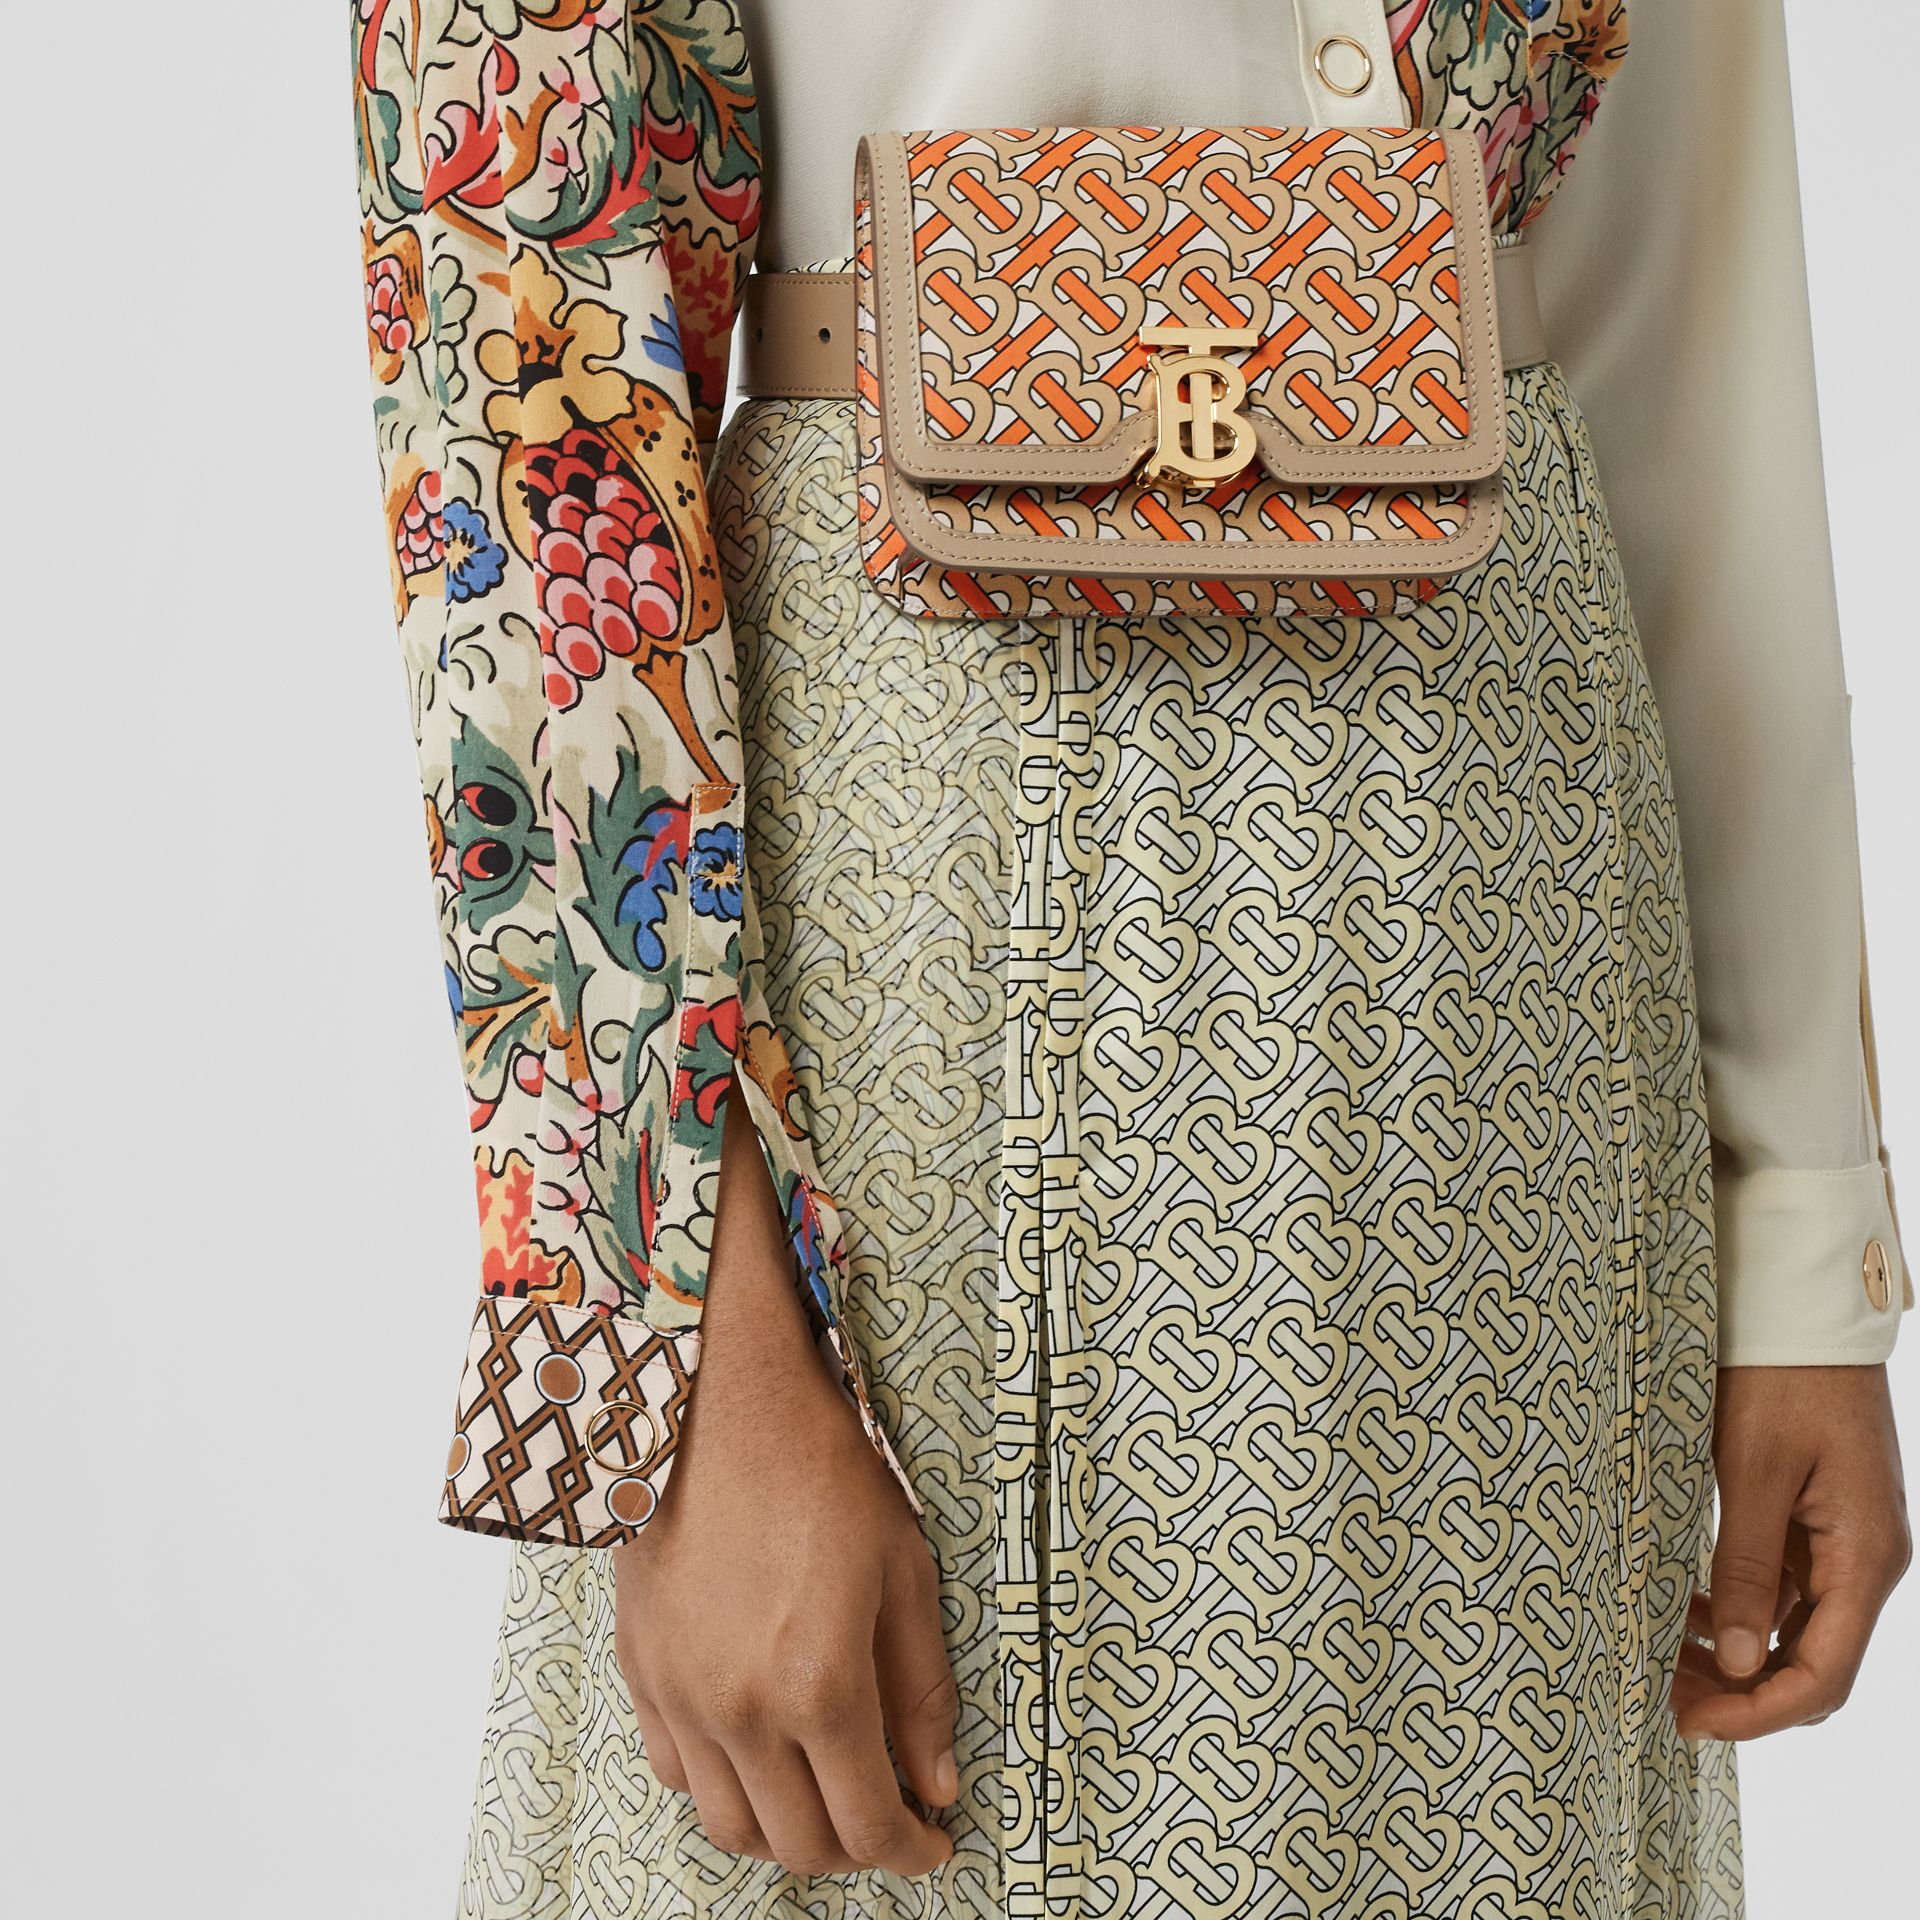 Belted Monogram Print Leather TB Bag in Bright Orange - Women | Burberry Singapore - gallery image 2